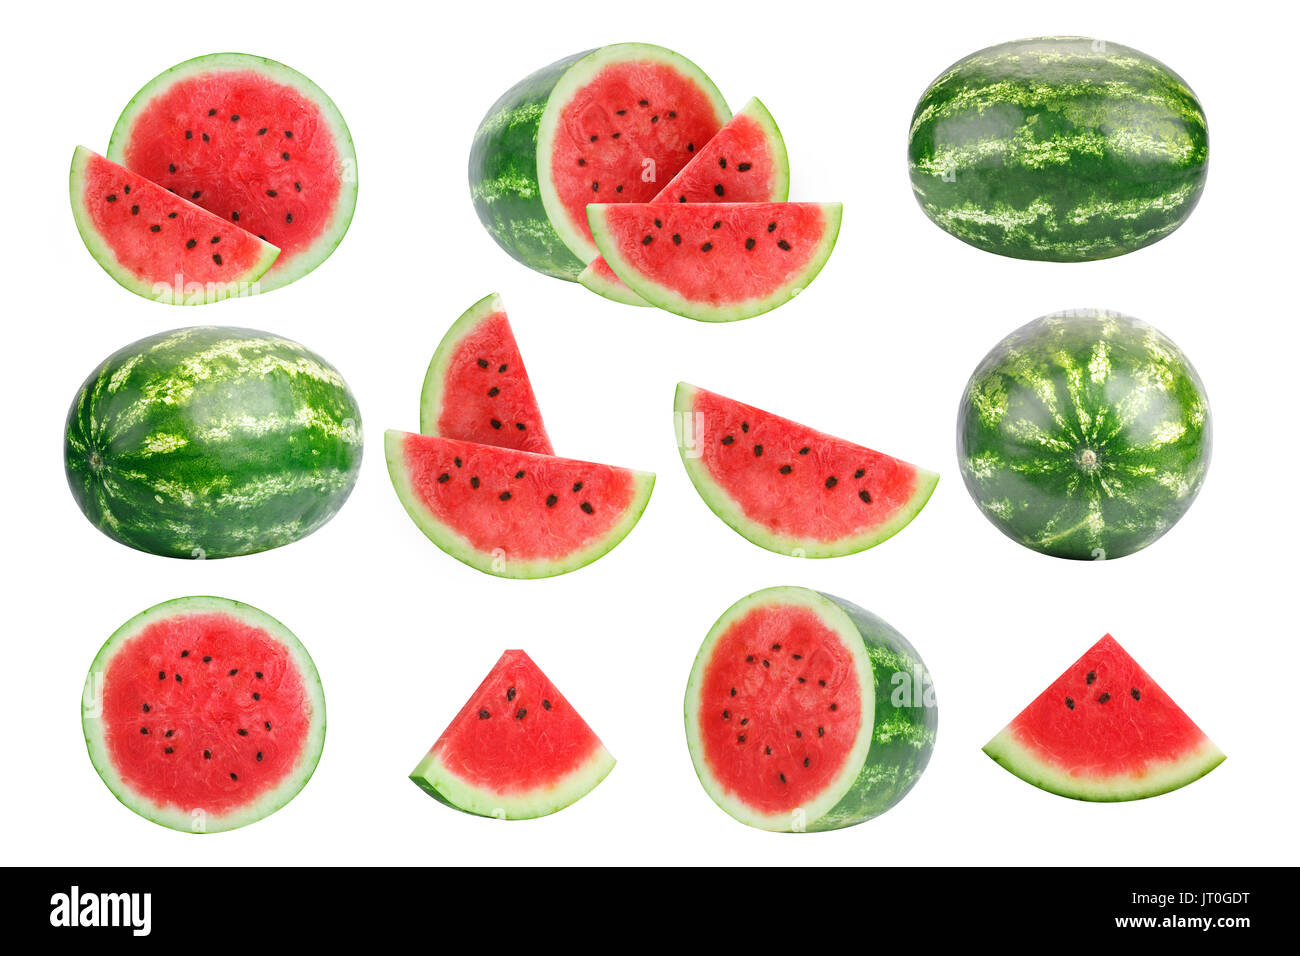 Set of images of watermelon isolated on white background. - Stock Image